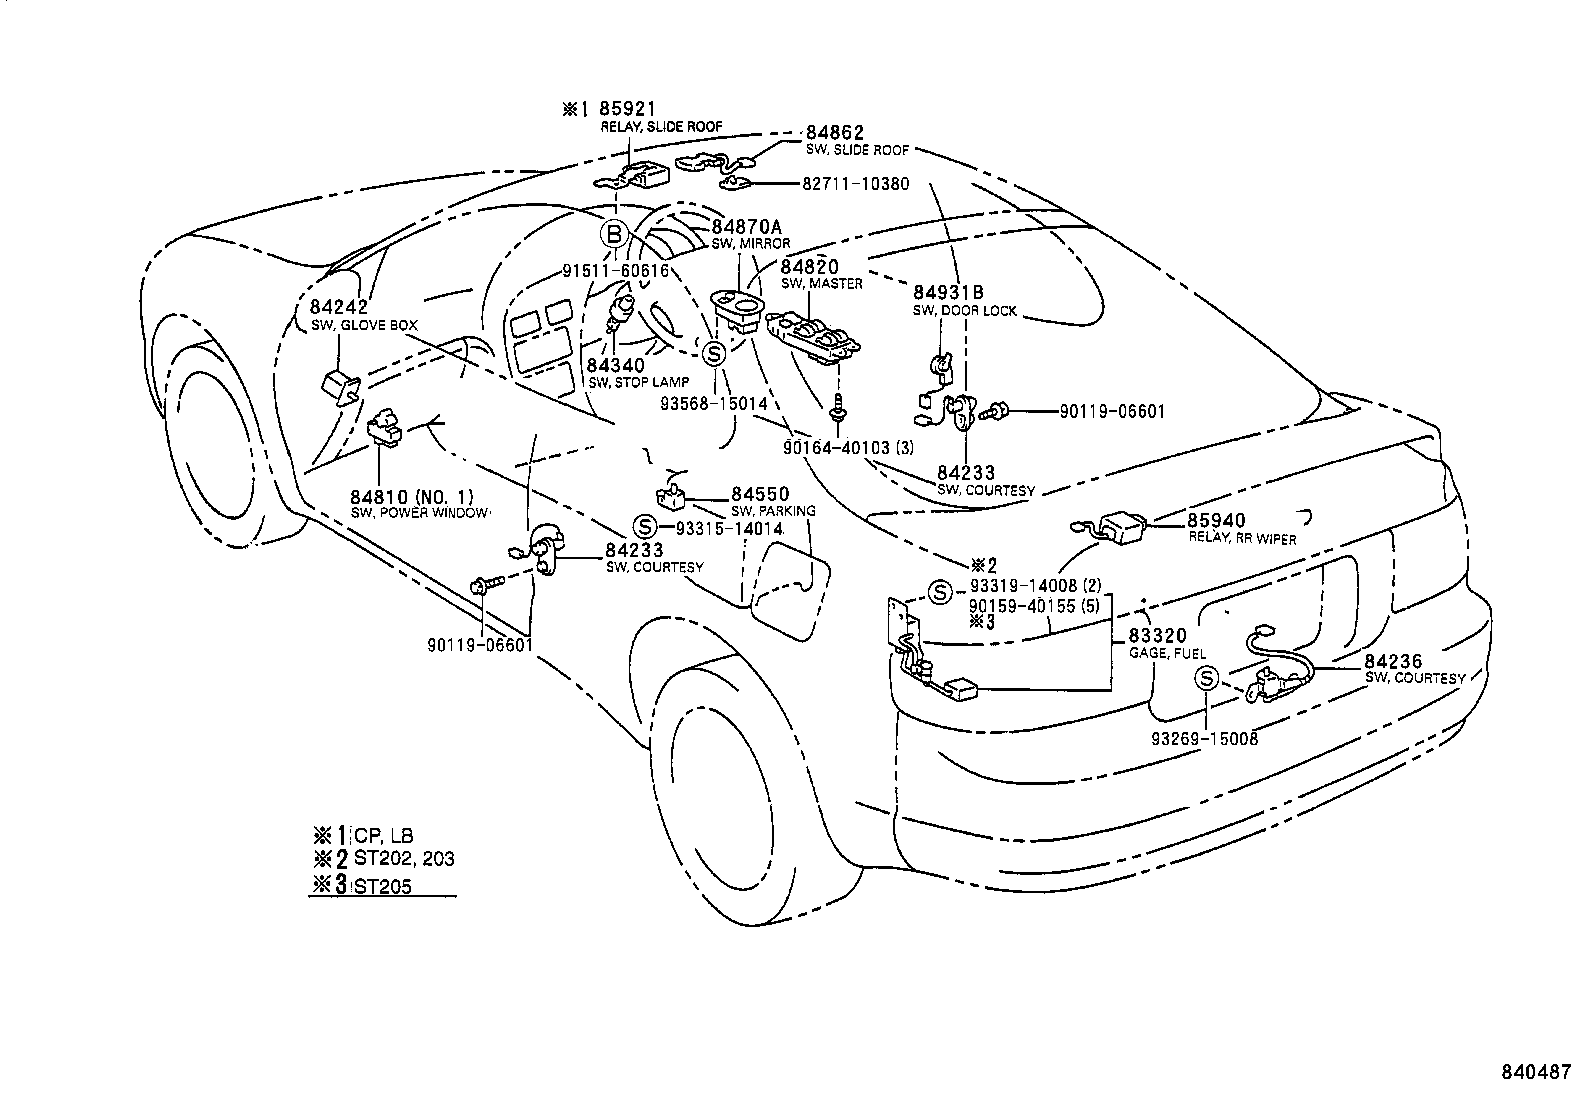 Toyota Celicast205l-blmvzw - Electrical